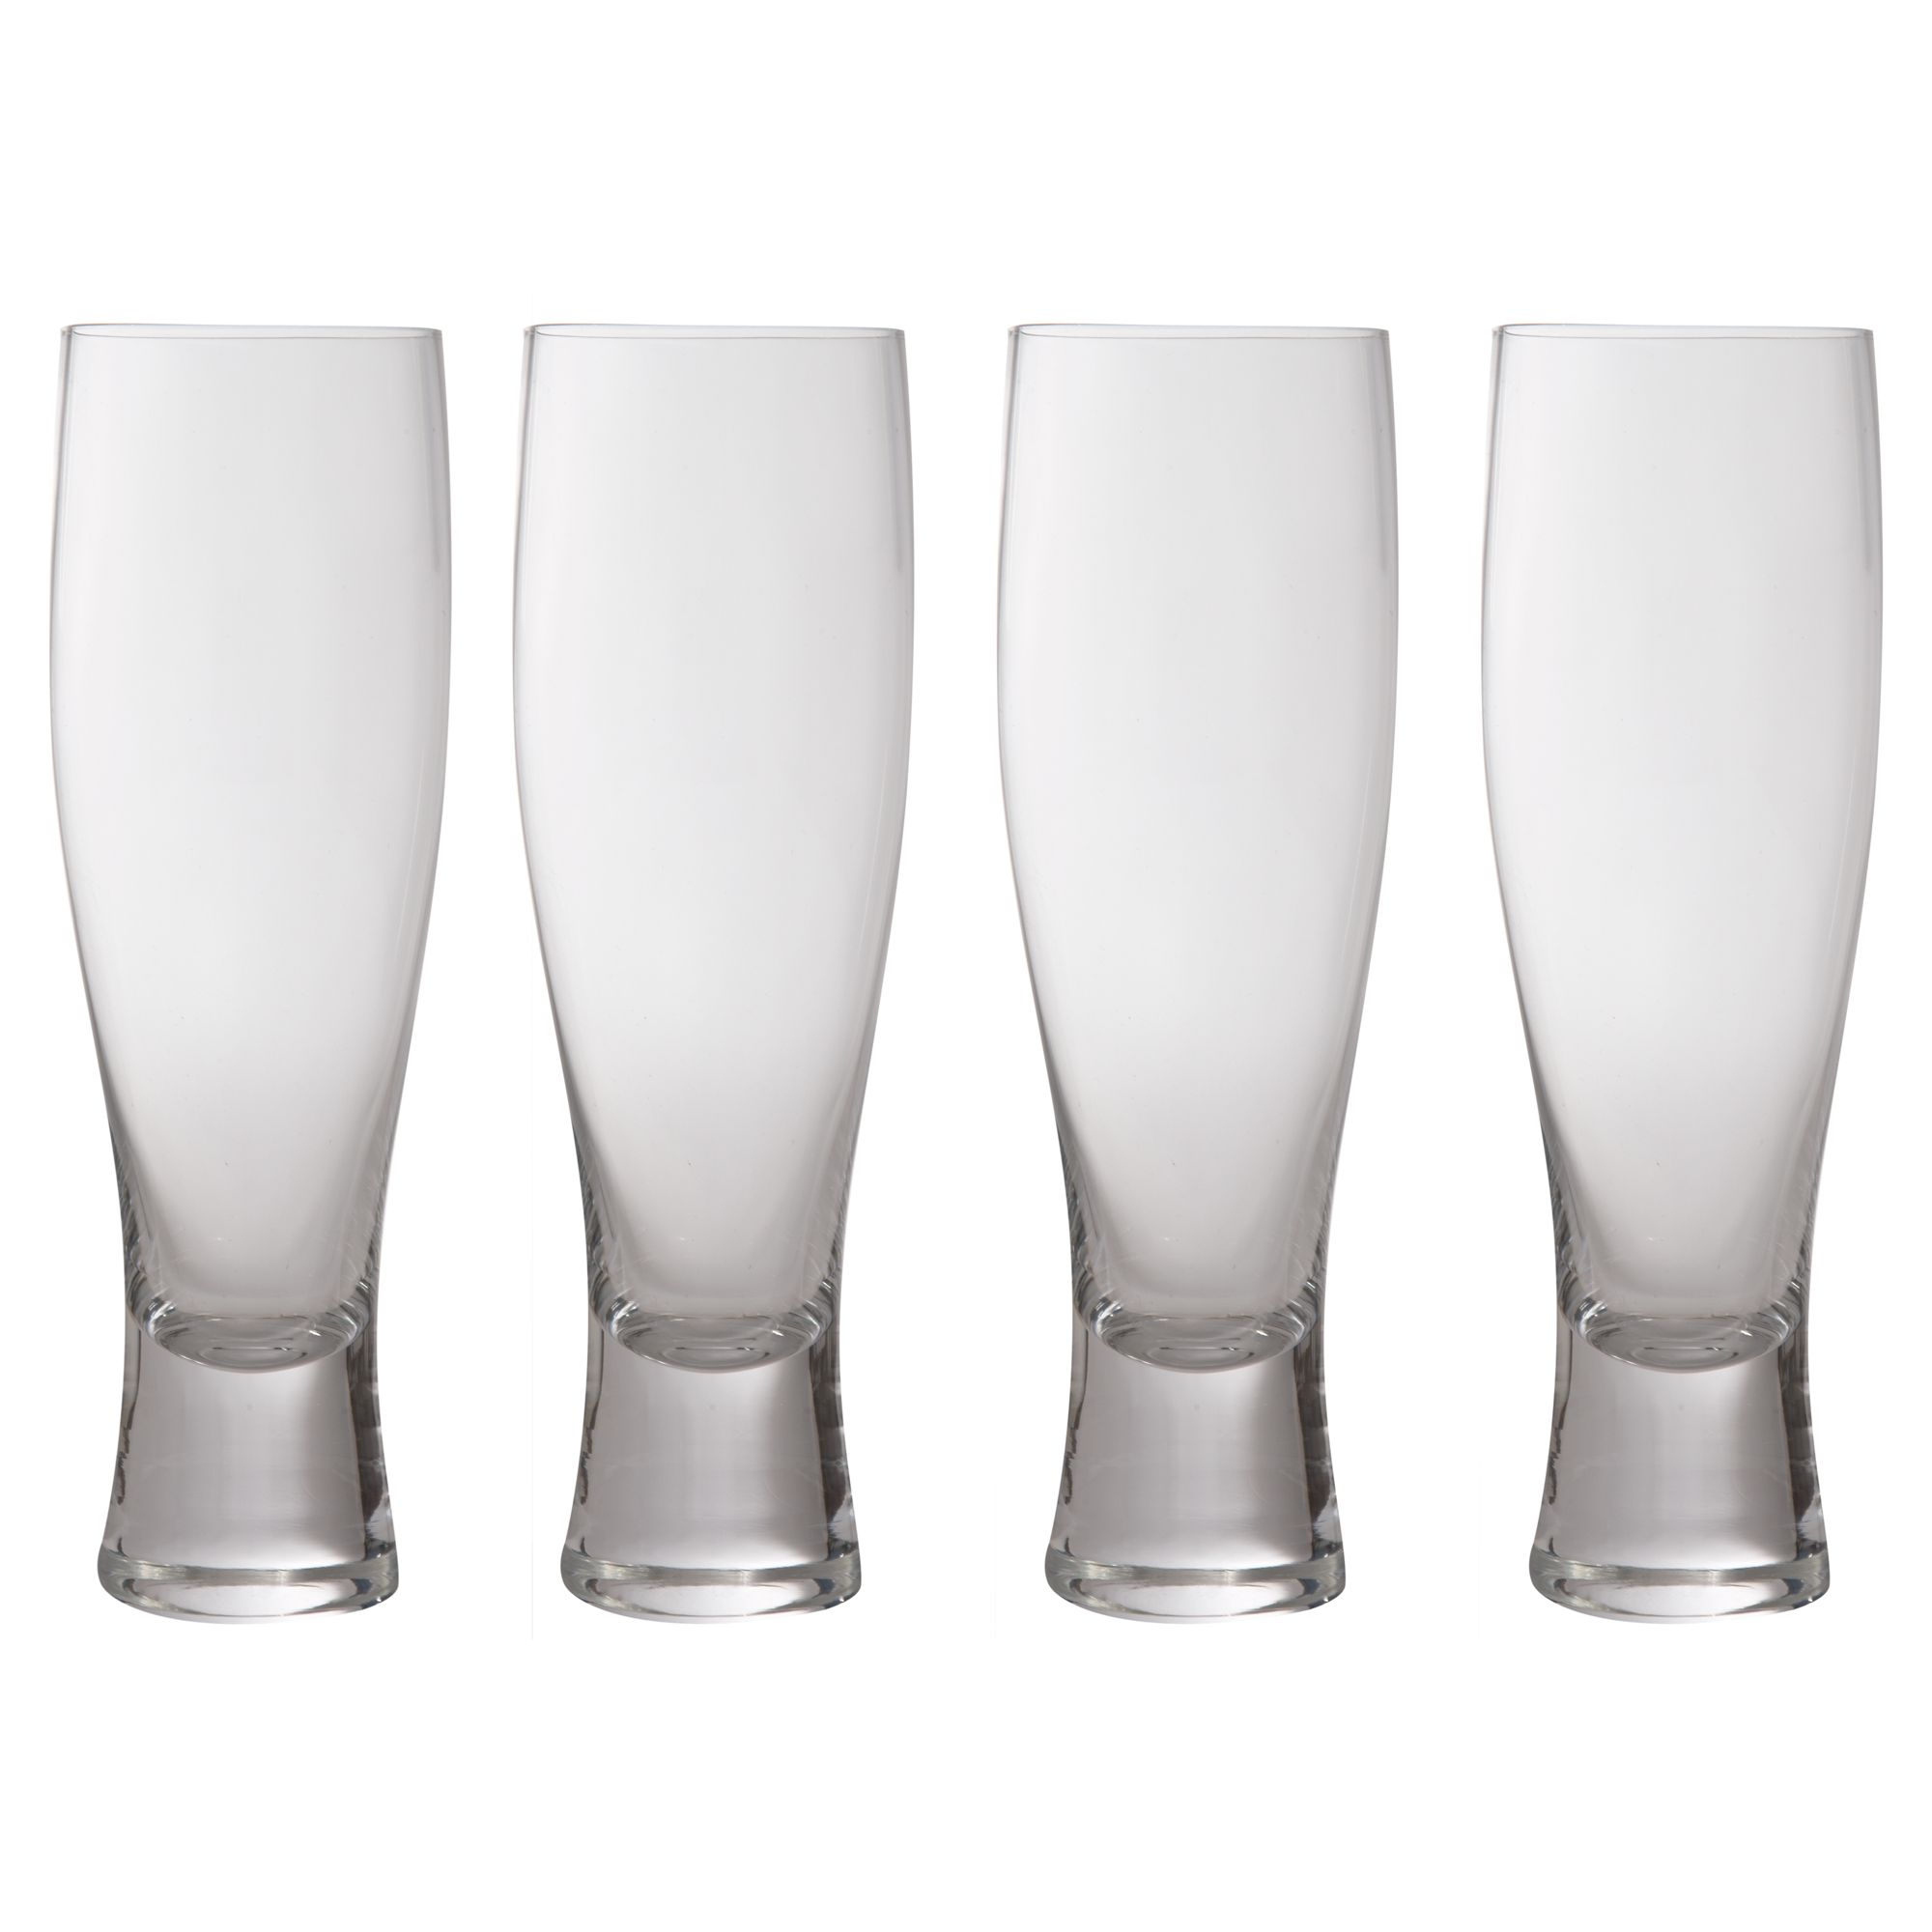 Bar collection lager glasses, set of 4